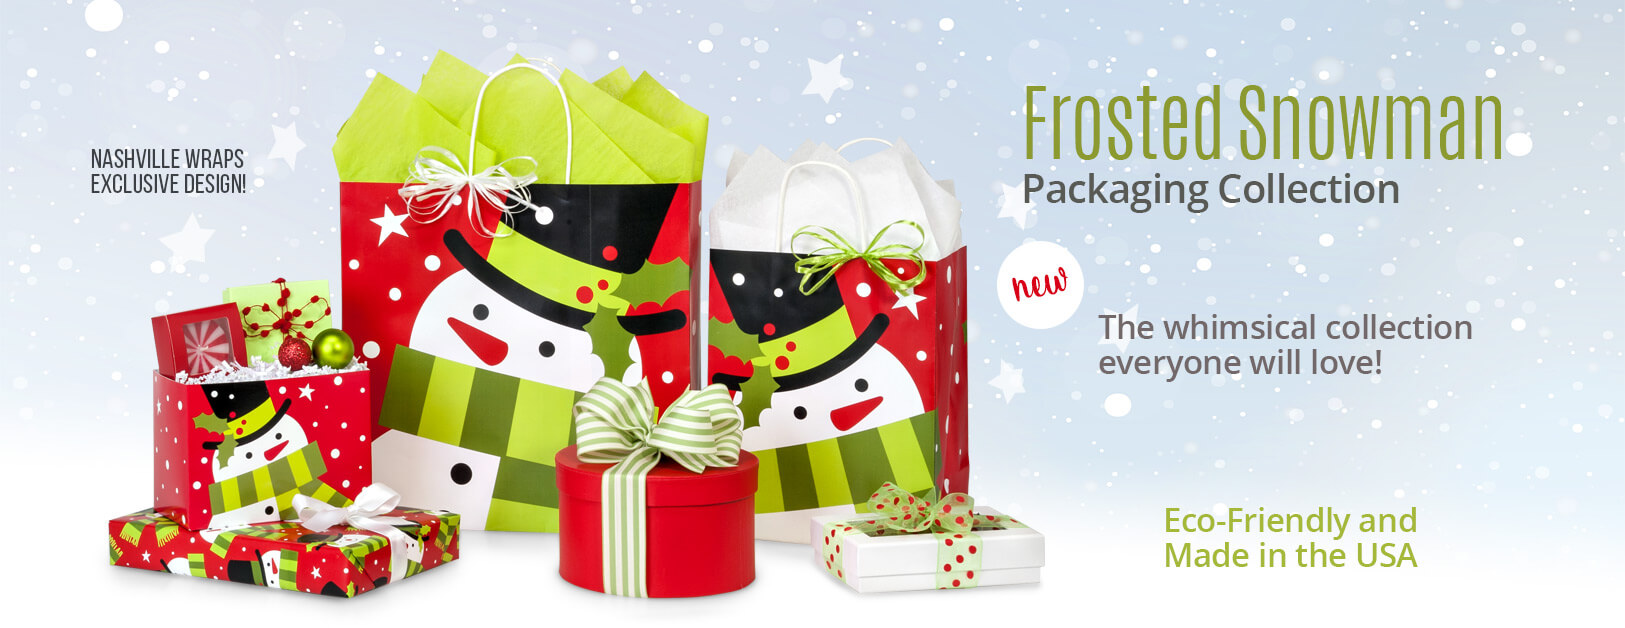 Frosted Snowman Christmas Shopping Bags collection from Nashville Wraps